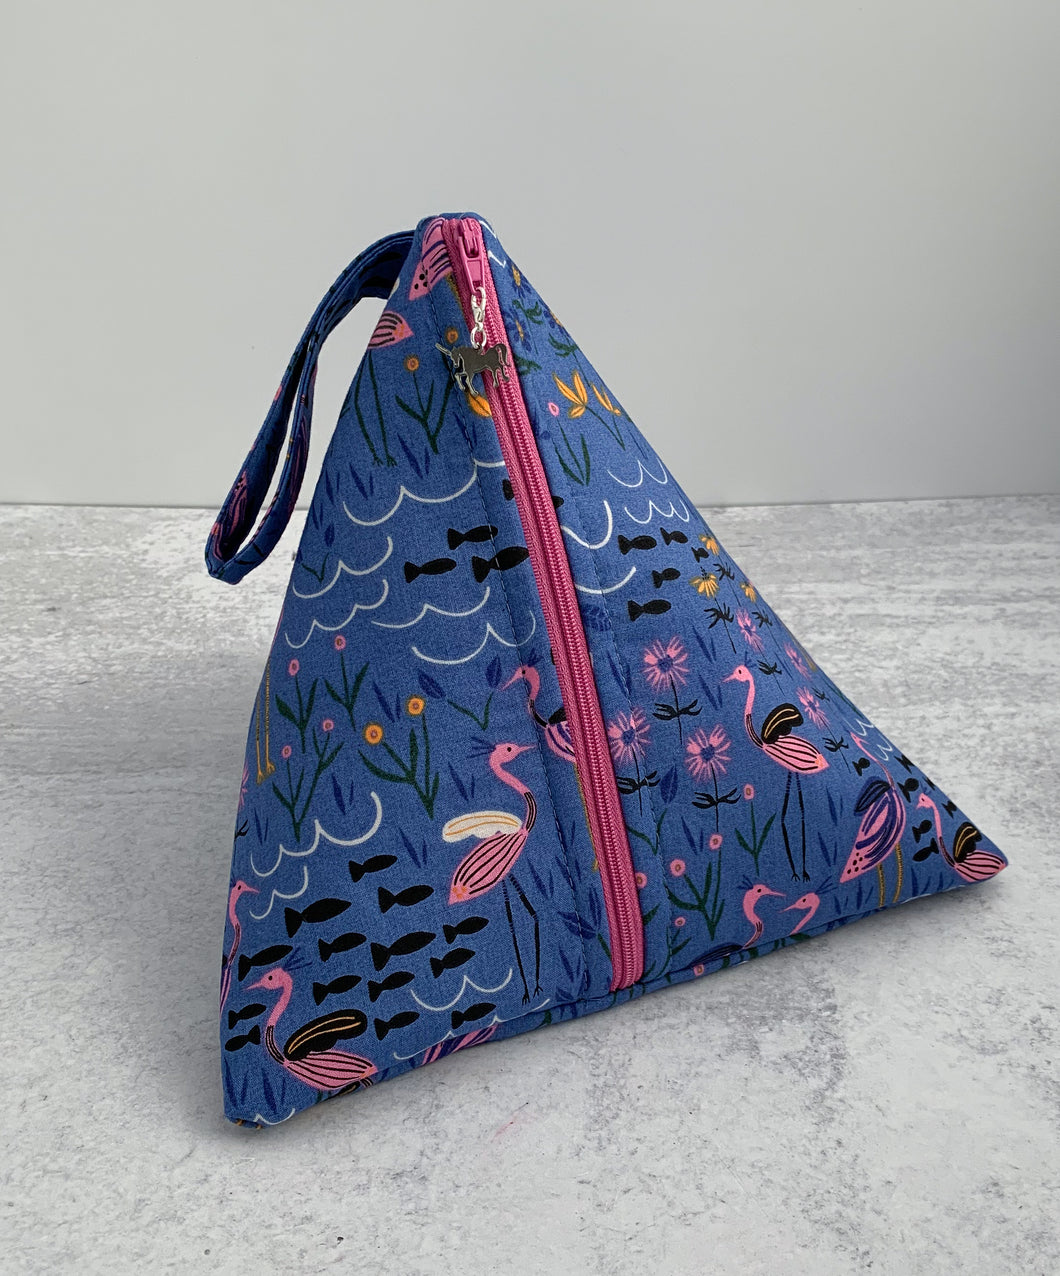 Moonlight Herons Sock-Sized Project Bag